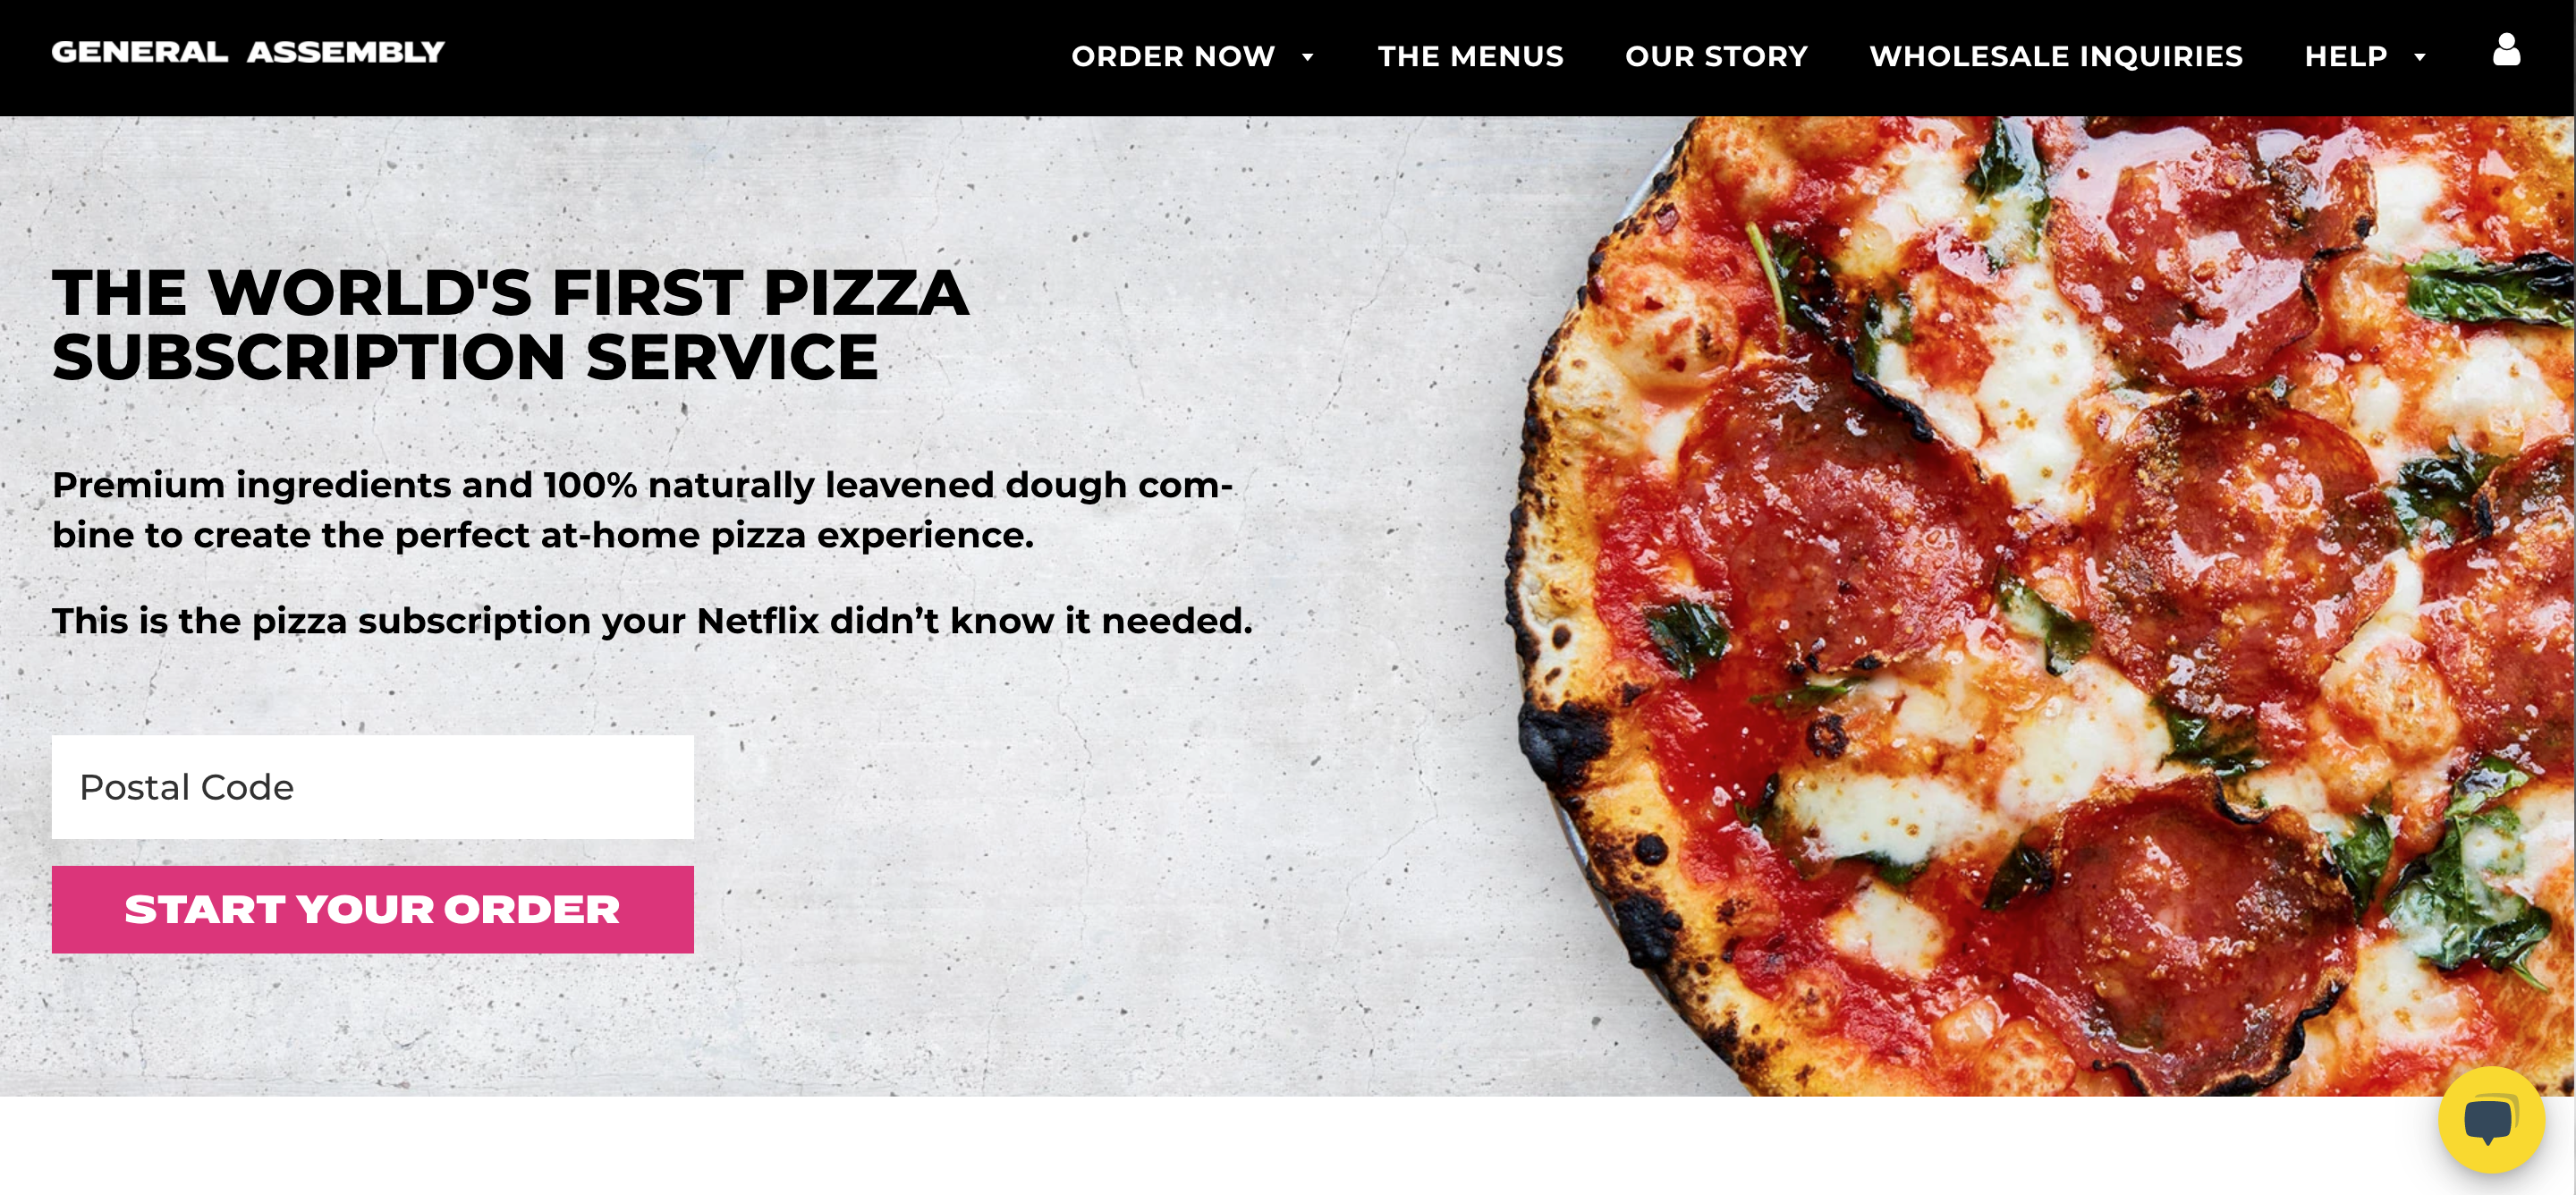 General Assembly Pizza brick and mortar subscription